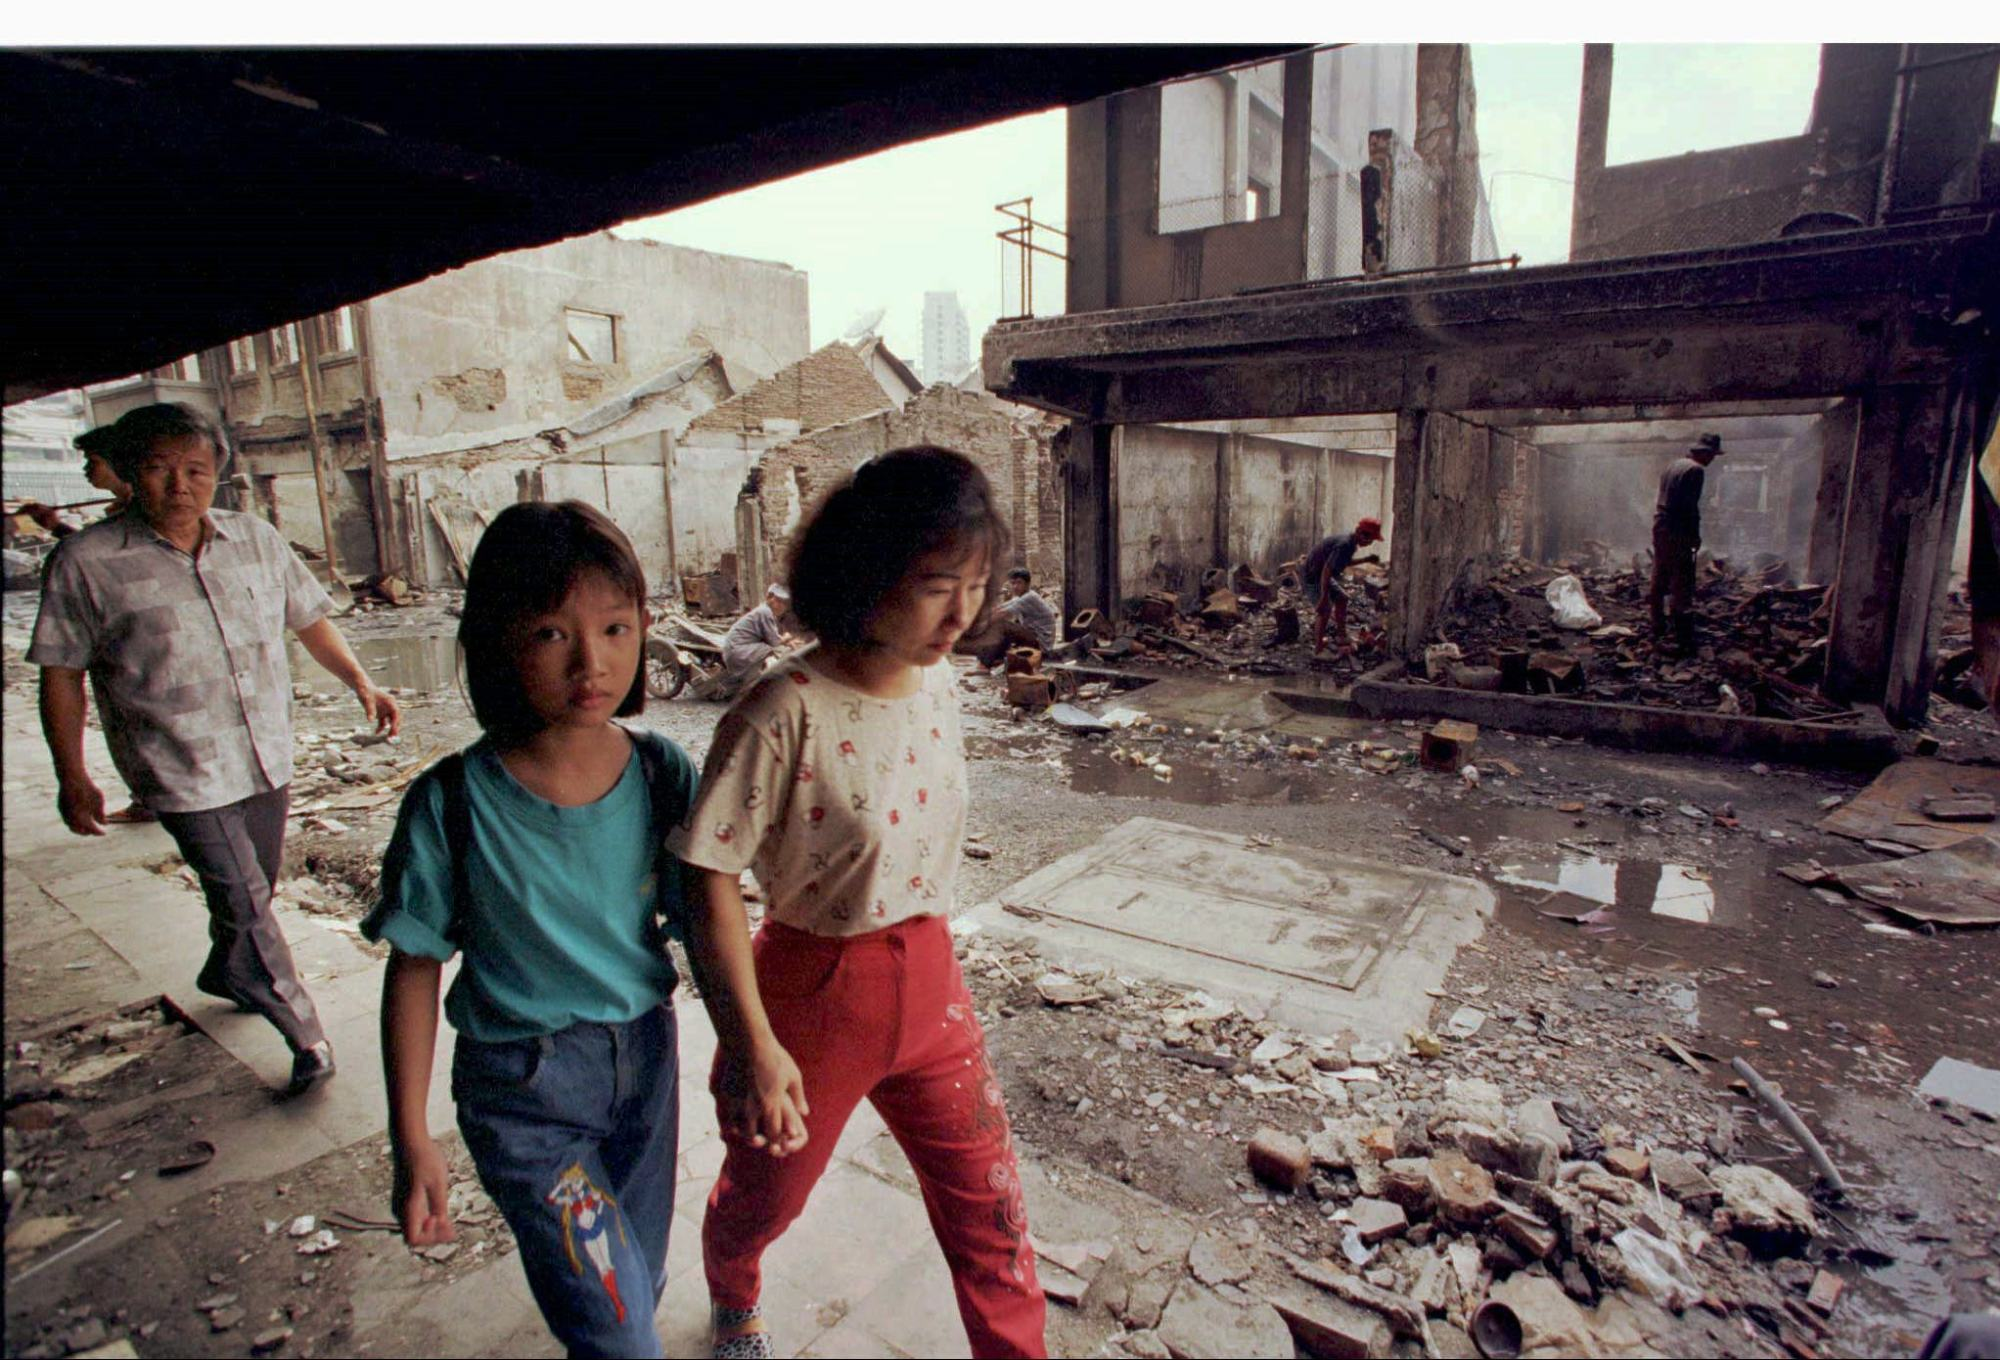 Chinese-Indonesians walk past destroyed houses in Jakarta in 1998 after the area was looted by mobs during riots that precipitated President Suharto's downfall. Photo: Reuters